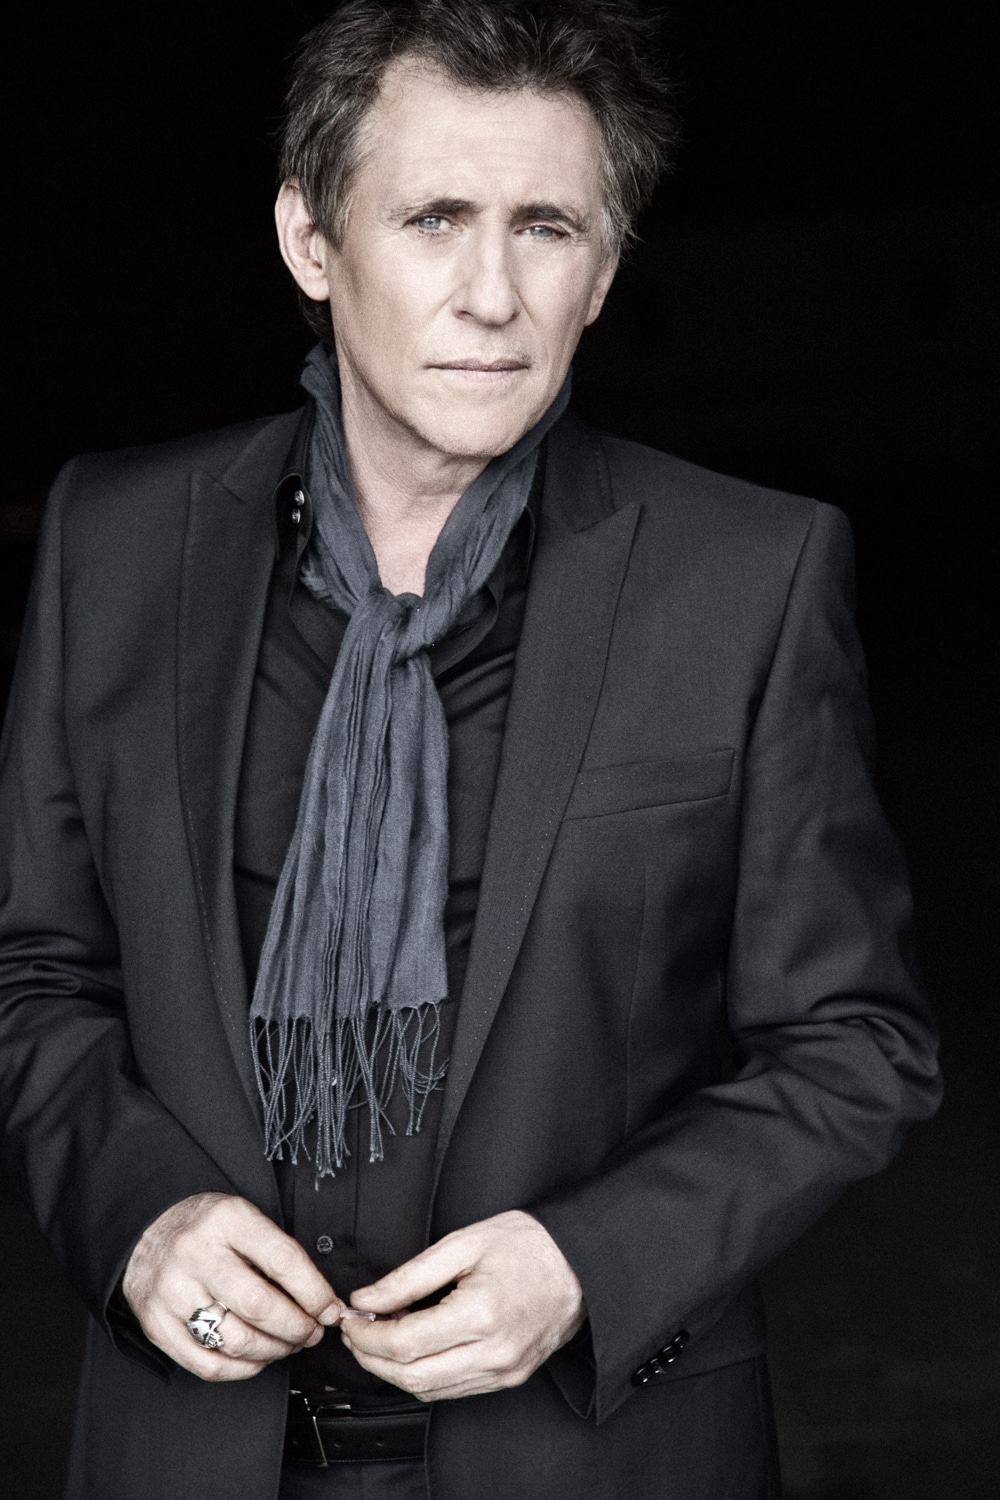 GABRIEL BYRNE PHOTOGRAPHED BY BARRY MCCALL FOR PHO20GRAPHY